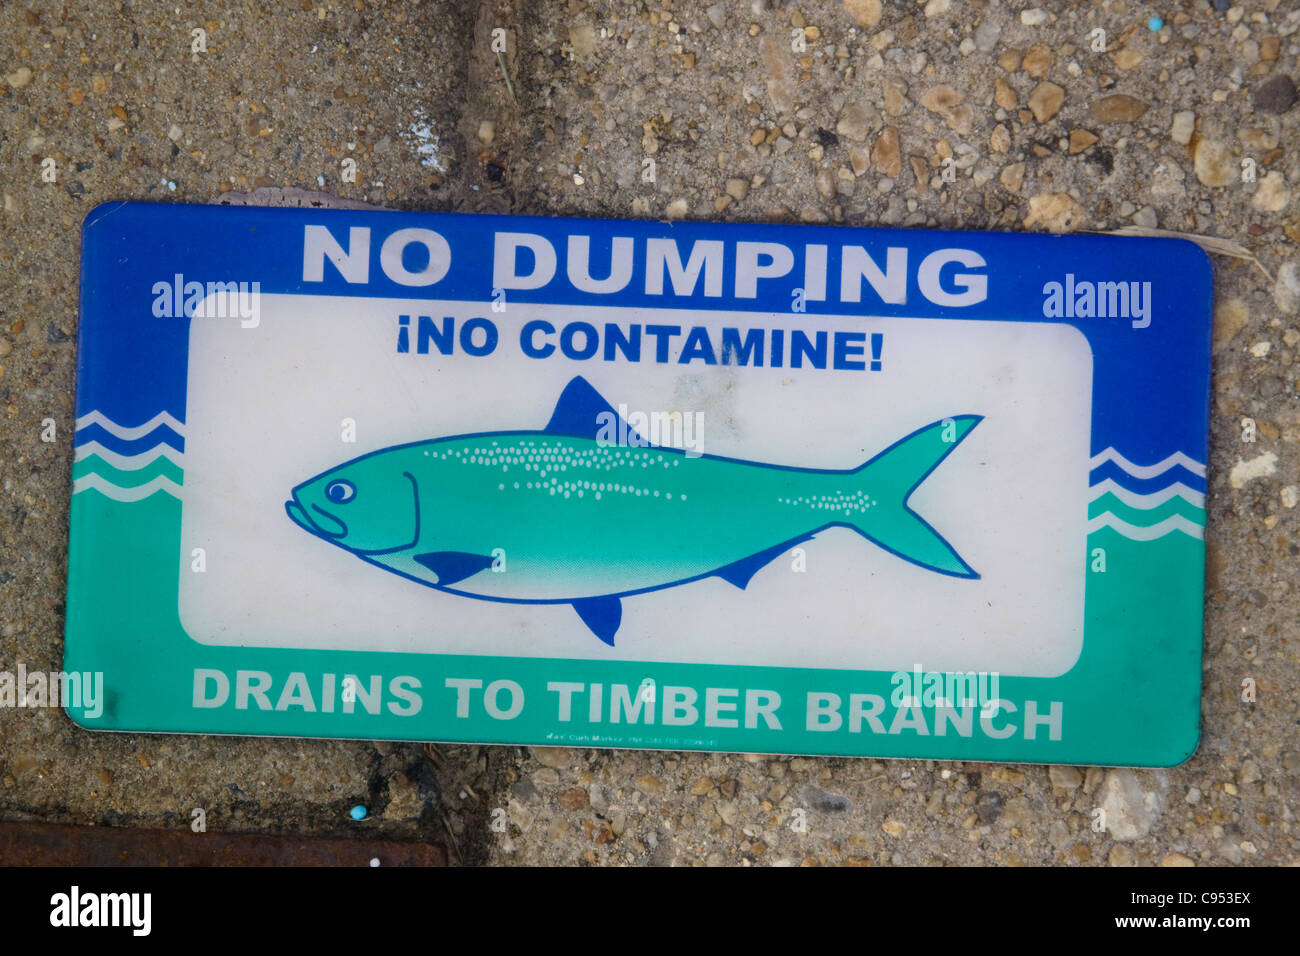 City of Alexandria Virginia No Dumping Drains to Timber Branch sign on top of a storm water drainage catch basin - Stock Image